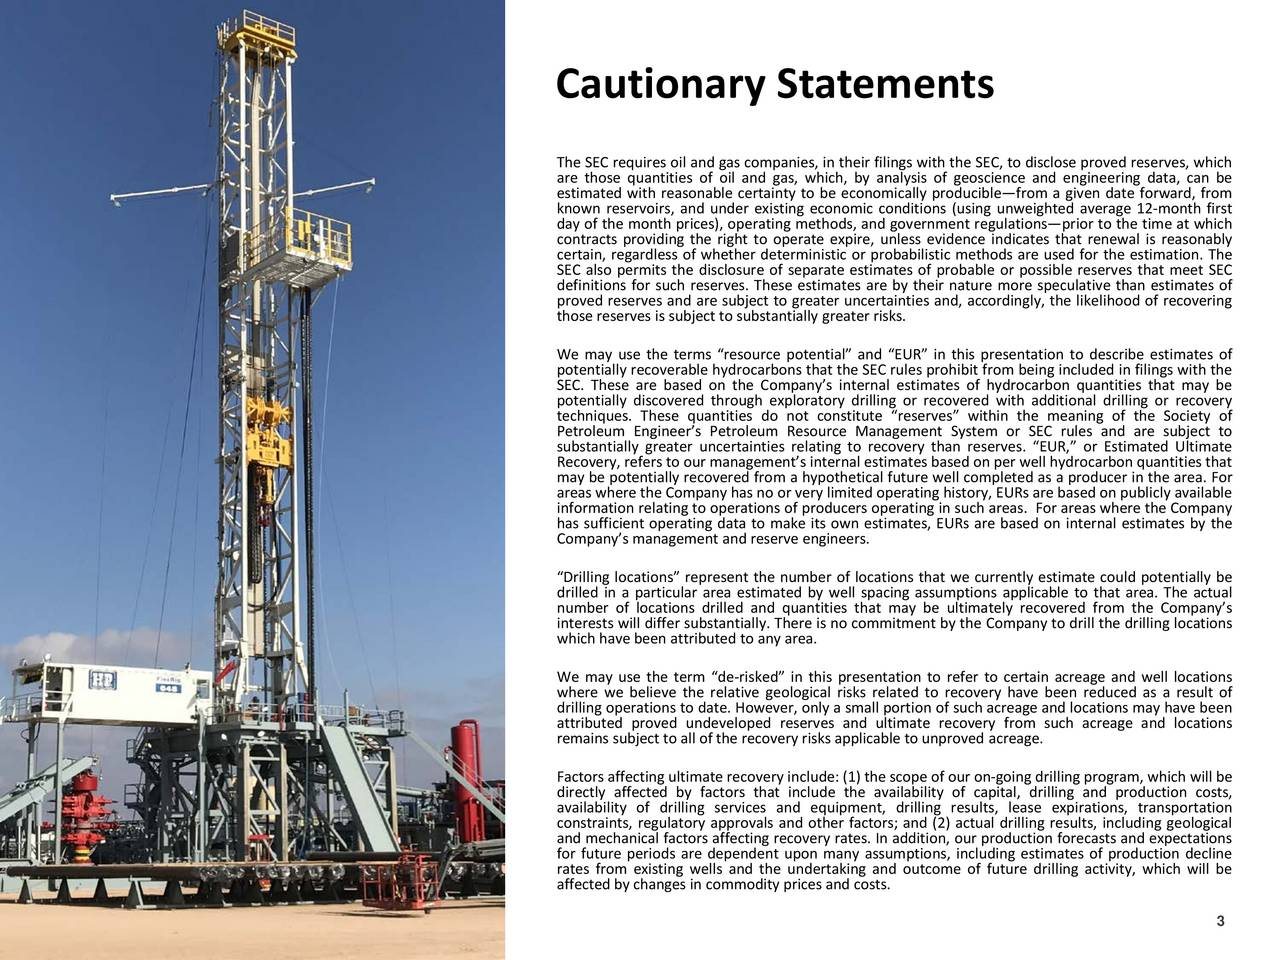 The SEC requires oil and gas companies, in their filings with the SEC, to disclose proved reserves, which are those quantities of oil and gas, which, by analysis of geoscience and engineering data, can be estimated with reasonable certainty to be economically produciblefrom a given date forward, from known reservoirs, and under existing economic conditions (using unweighted average 12-month first contracts providing the right to operate expire, unless evidence indicates that renewal is reasonably certain, regardless of whether deterministic or probabilistic methods are used for the estimation. The SEC also permits the disclosure of separate estimates of probable or possible reserves that meet SEC definitions for such reserves. These estimates are by their nature more speculative than estimates of proved reserves and are subject to greater uncertainties and, accordingly, the likelihood of recovering those reserves is subjectto substantially greater risks. We may use the terms resource potential and EUR in this presentation to describe estimates of potentially recoverable hydrocarbons that the SEC rules prohibit from being included in filings with the SEC. These are based on the Companys internal estimates of hydrocarbon quantities that may be potentially discovered through exploratory drilling or recovered with additional drilling or recovery techniques. These quantities do not constitute reserves within the meaning of the Society of Petroleum Engineers Petroleum Resource Management System or SEC rules and are subject to substantially greater uncertainties relating to recovery than reserves. EUR, or Estimated Ultimate Recovery, refers to our managementsinternalestimatesbased on per well hydrocarbonquantitiesthat may be potentially recovered from a hypothetical future well completed as a producer in the area. For information relating to operations of producers operating in such areas. For areas where the Companyle has sufficient operating data to make its own estimate